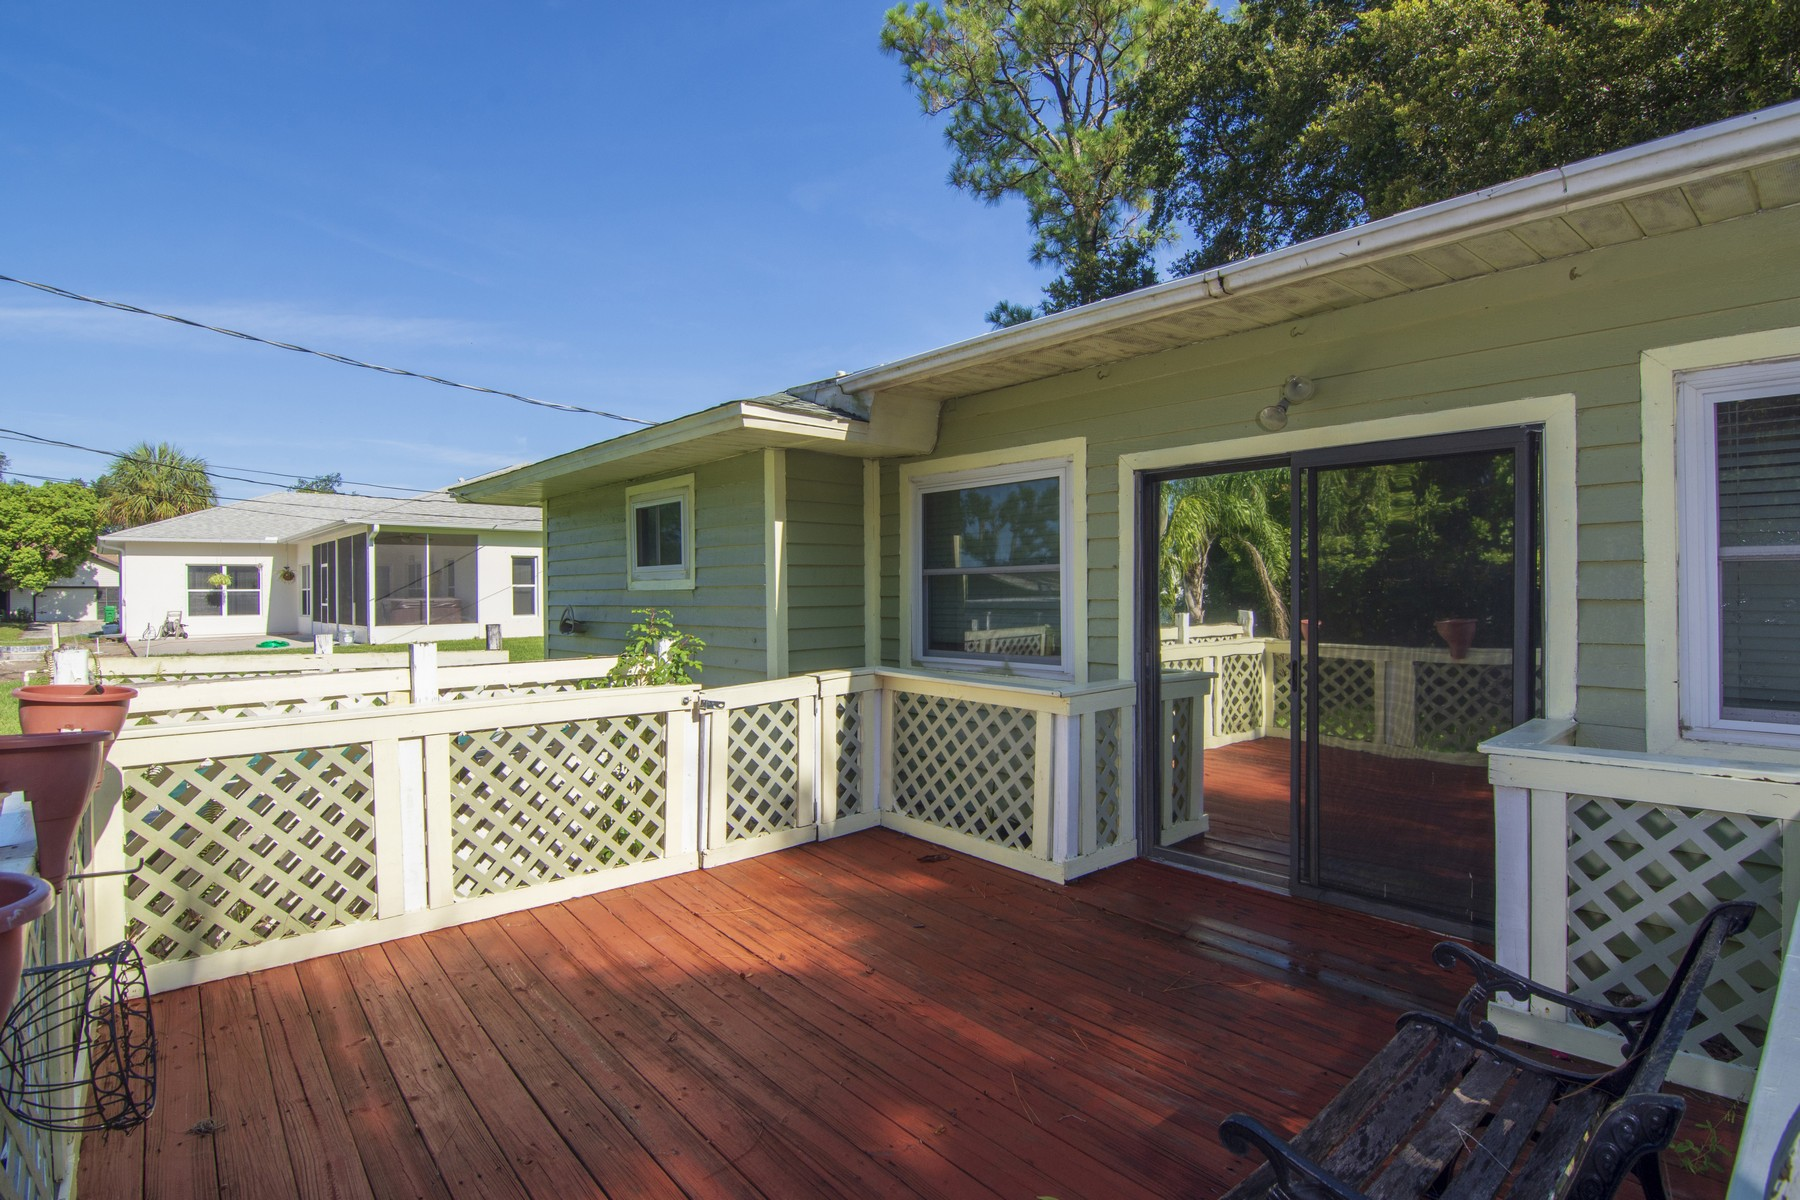 Additional photo for property listing at Bright and Airy Sebastian Home 781 Doctor Avenue Sebastian, Florida 32958 United States